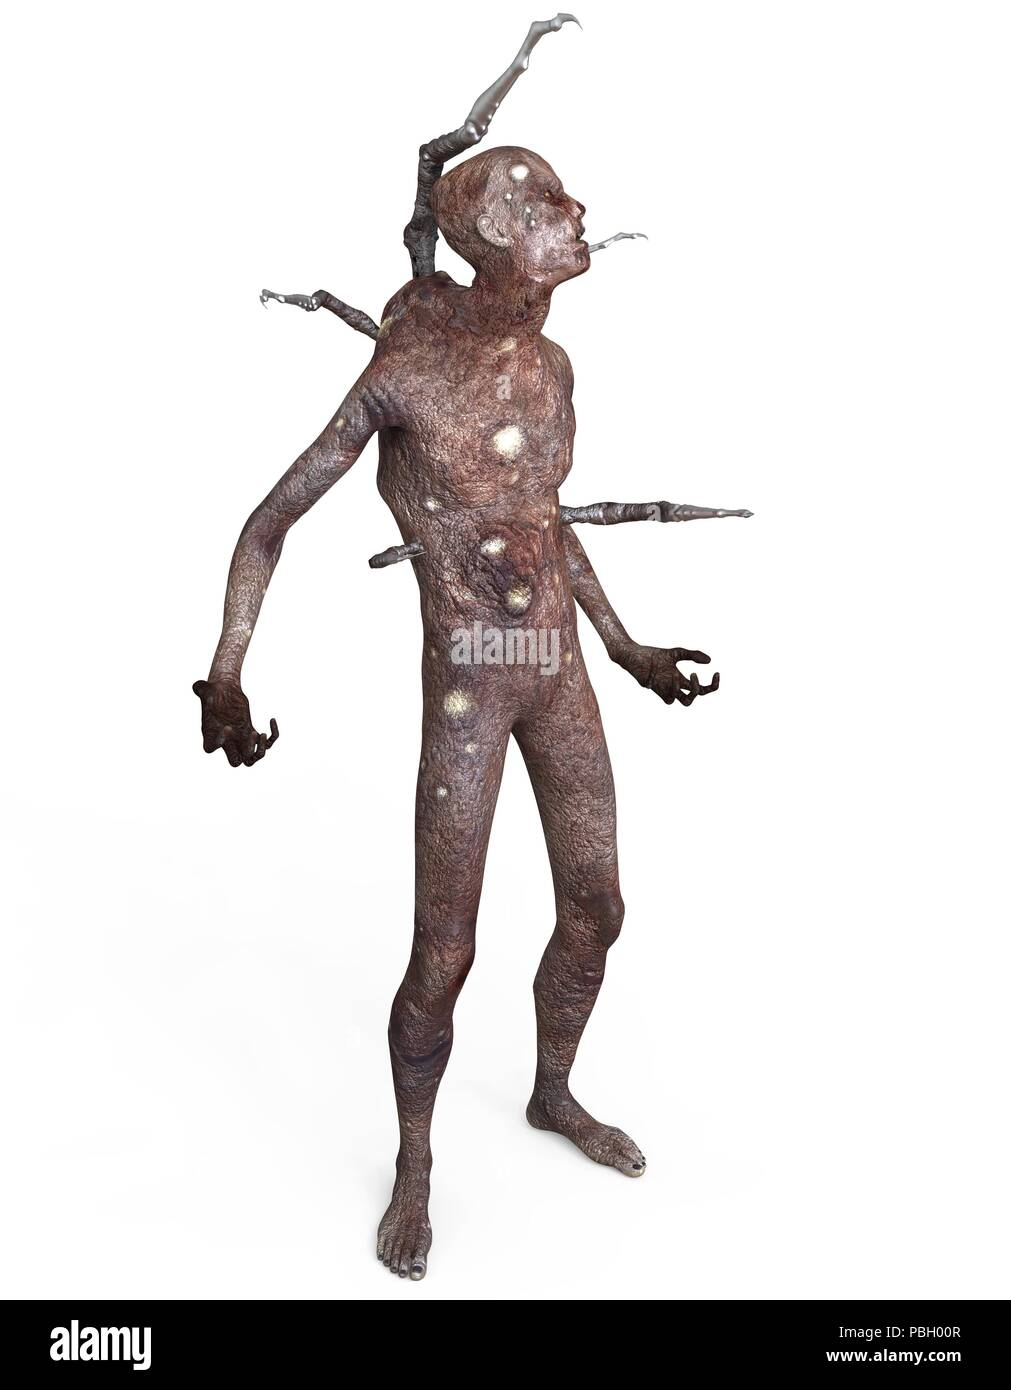 A man infected with an alien virus 3d illustration isolated on white background - Stock Image